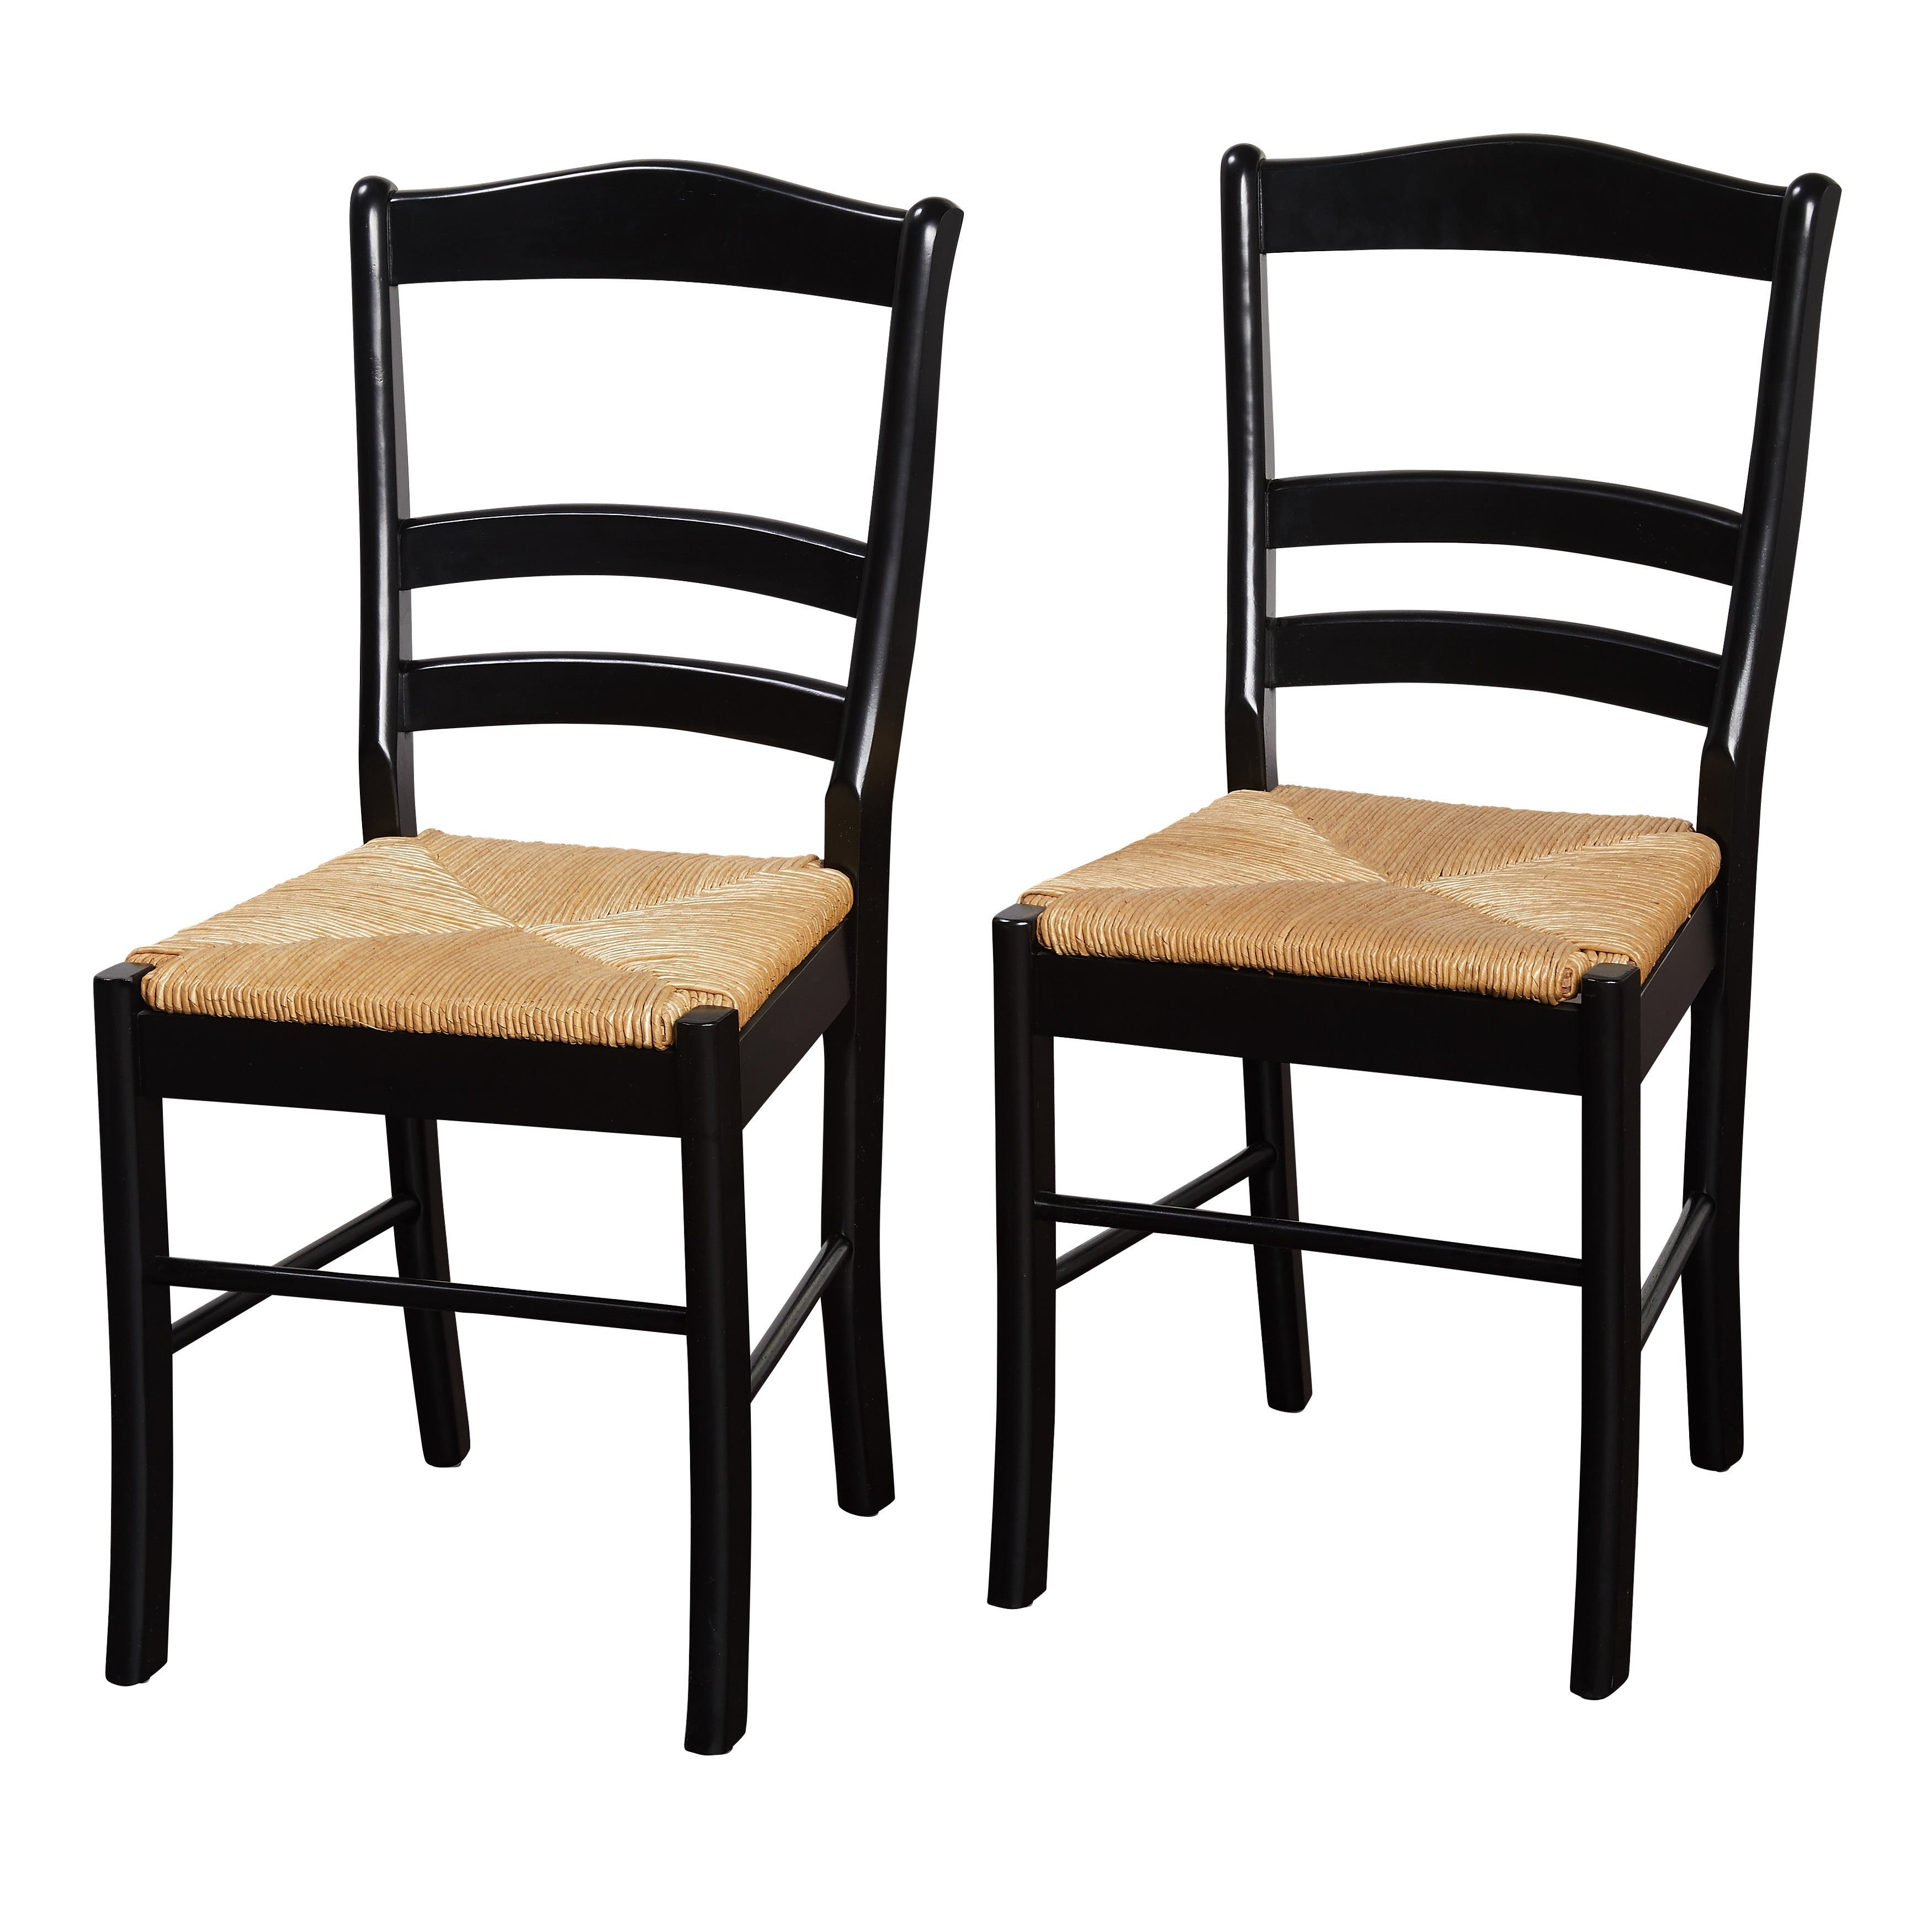 dining room chairs for less | Kitchen & Dining Room Chairs For Less | Overstock.com